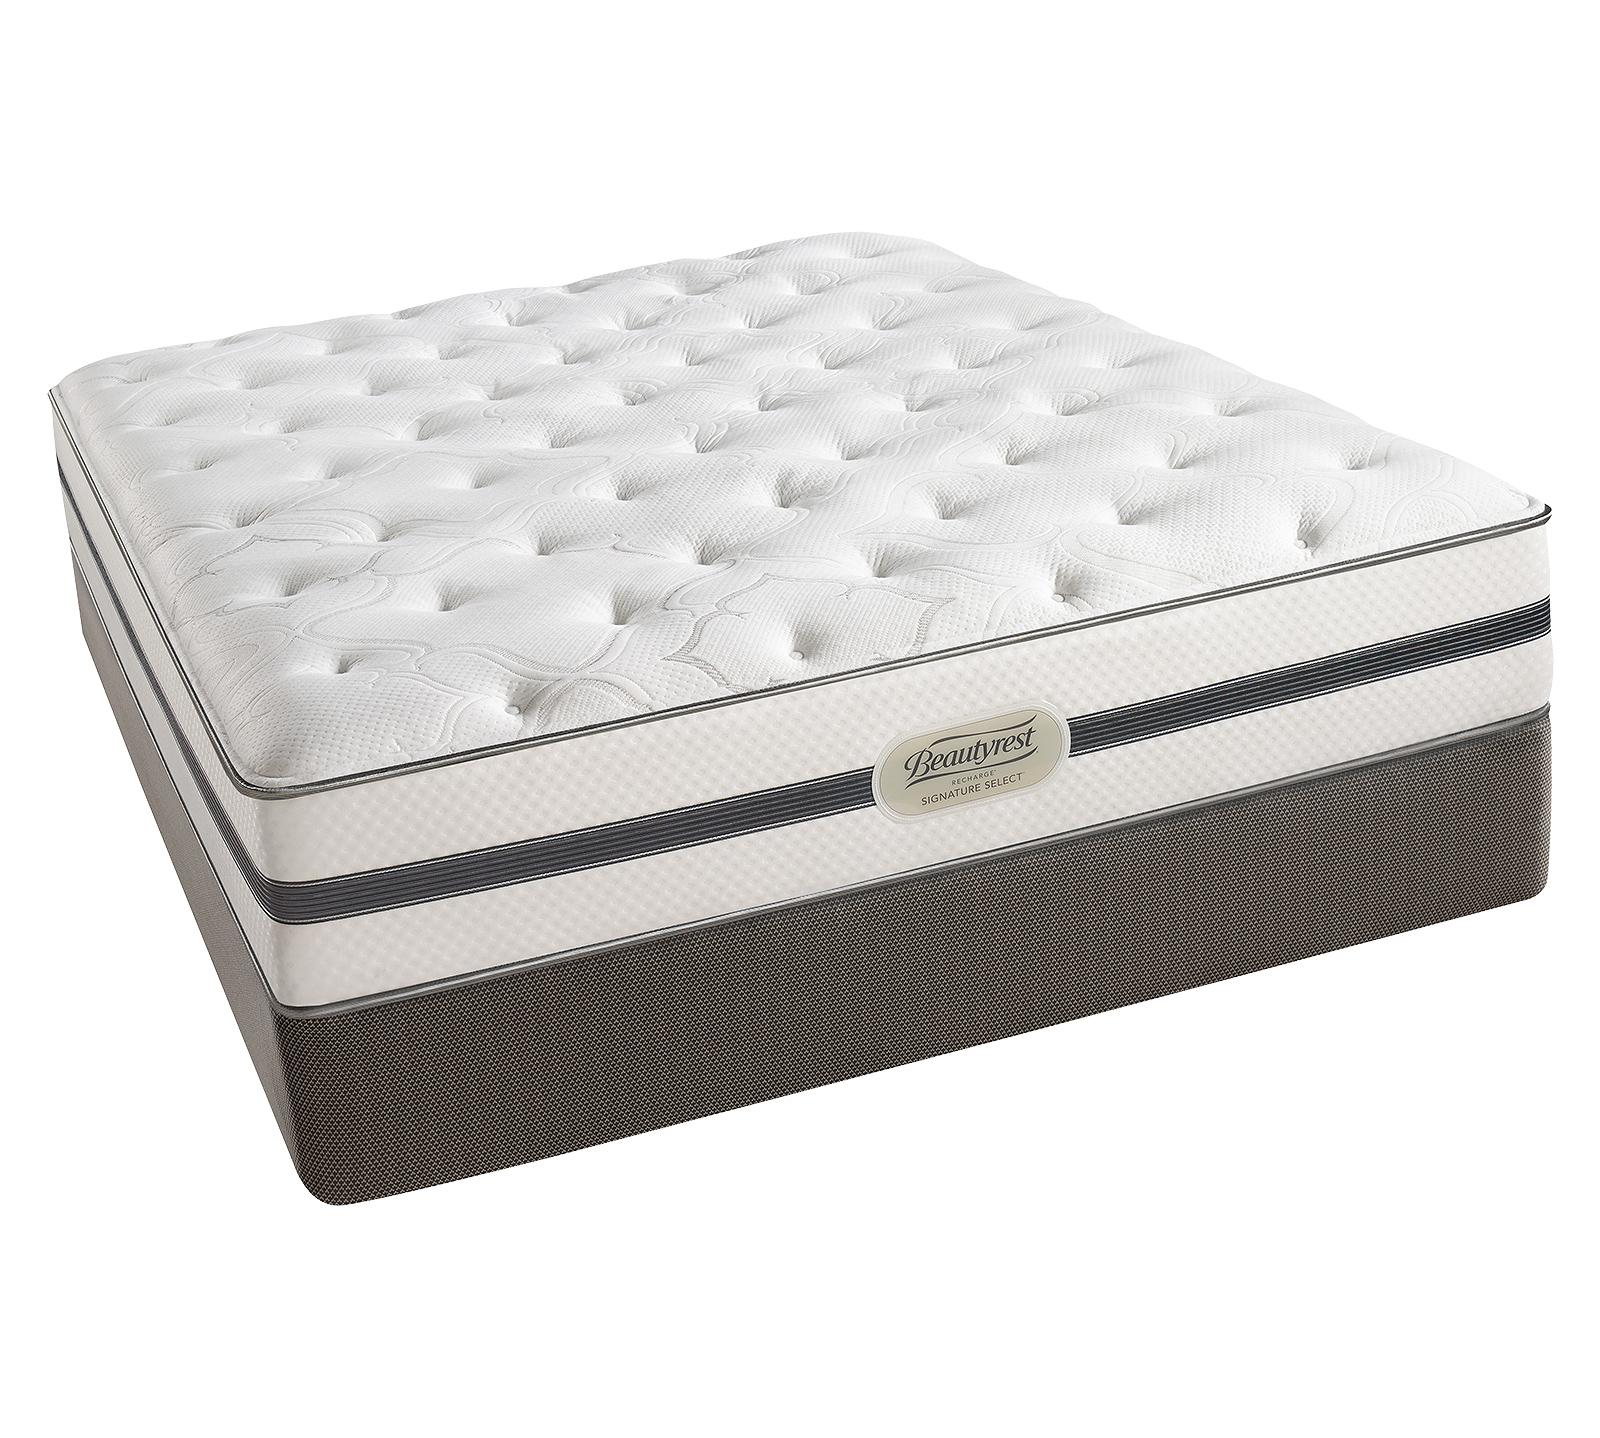 beautyrest recharge signature select ashaway plush mattress - Innerspring Mattress